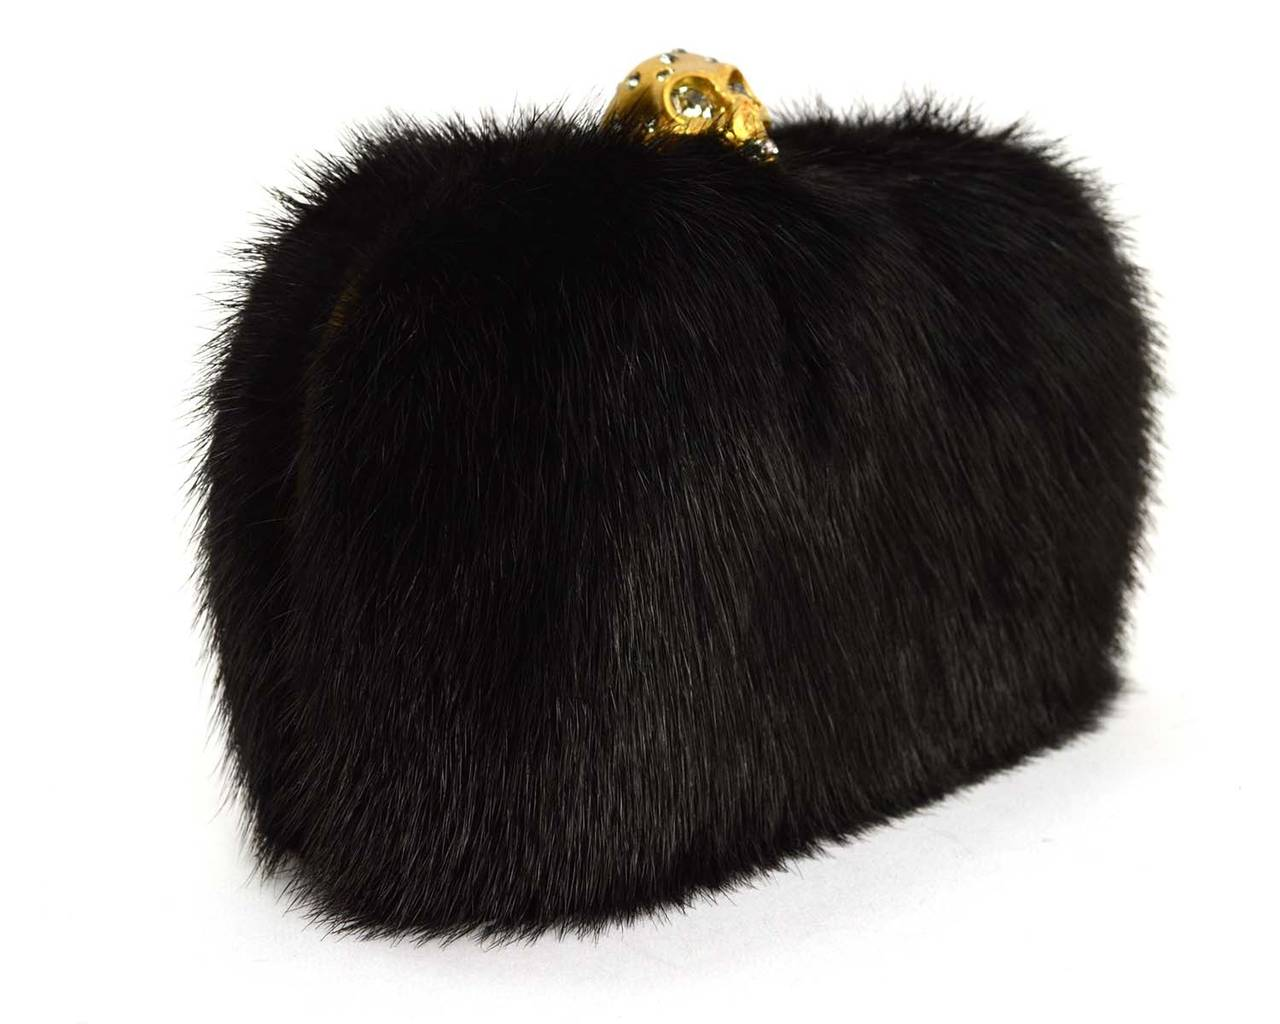 Alexander McQueen Black Fur Skull Clutch